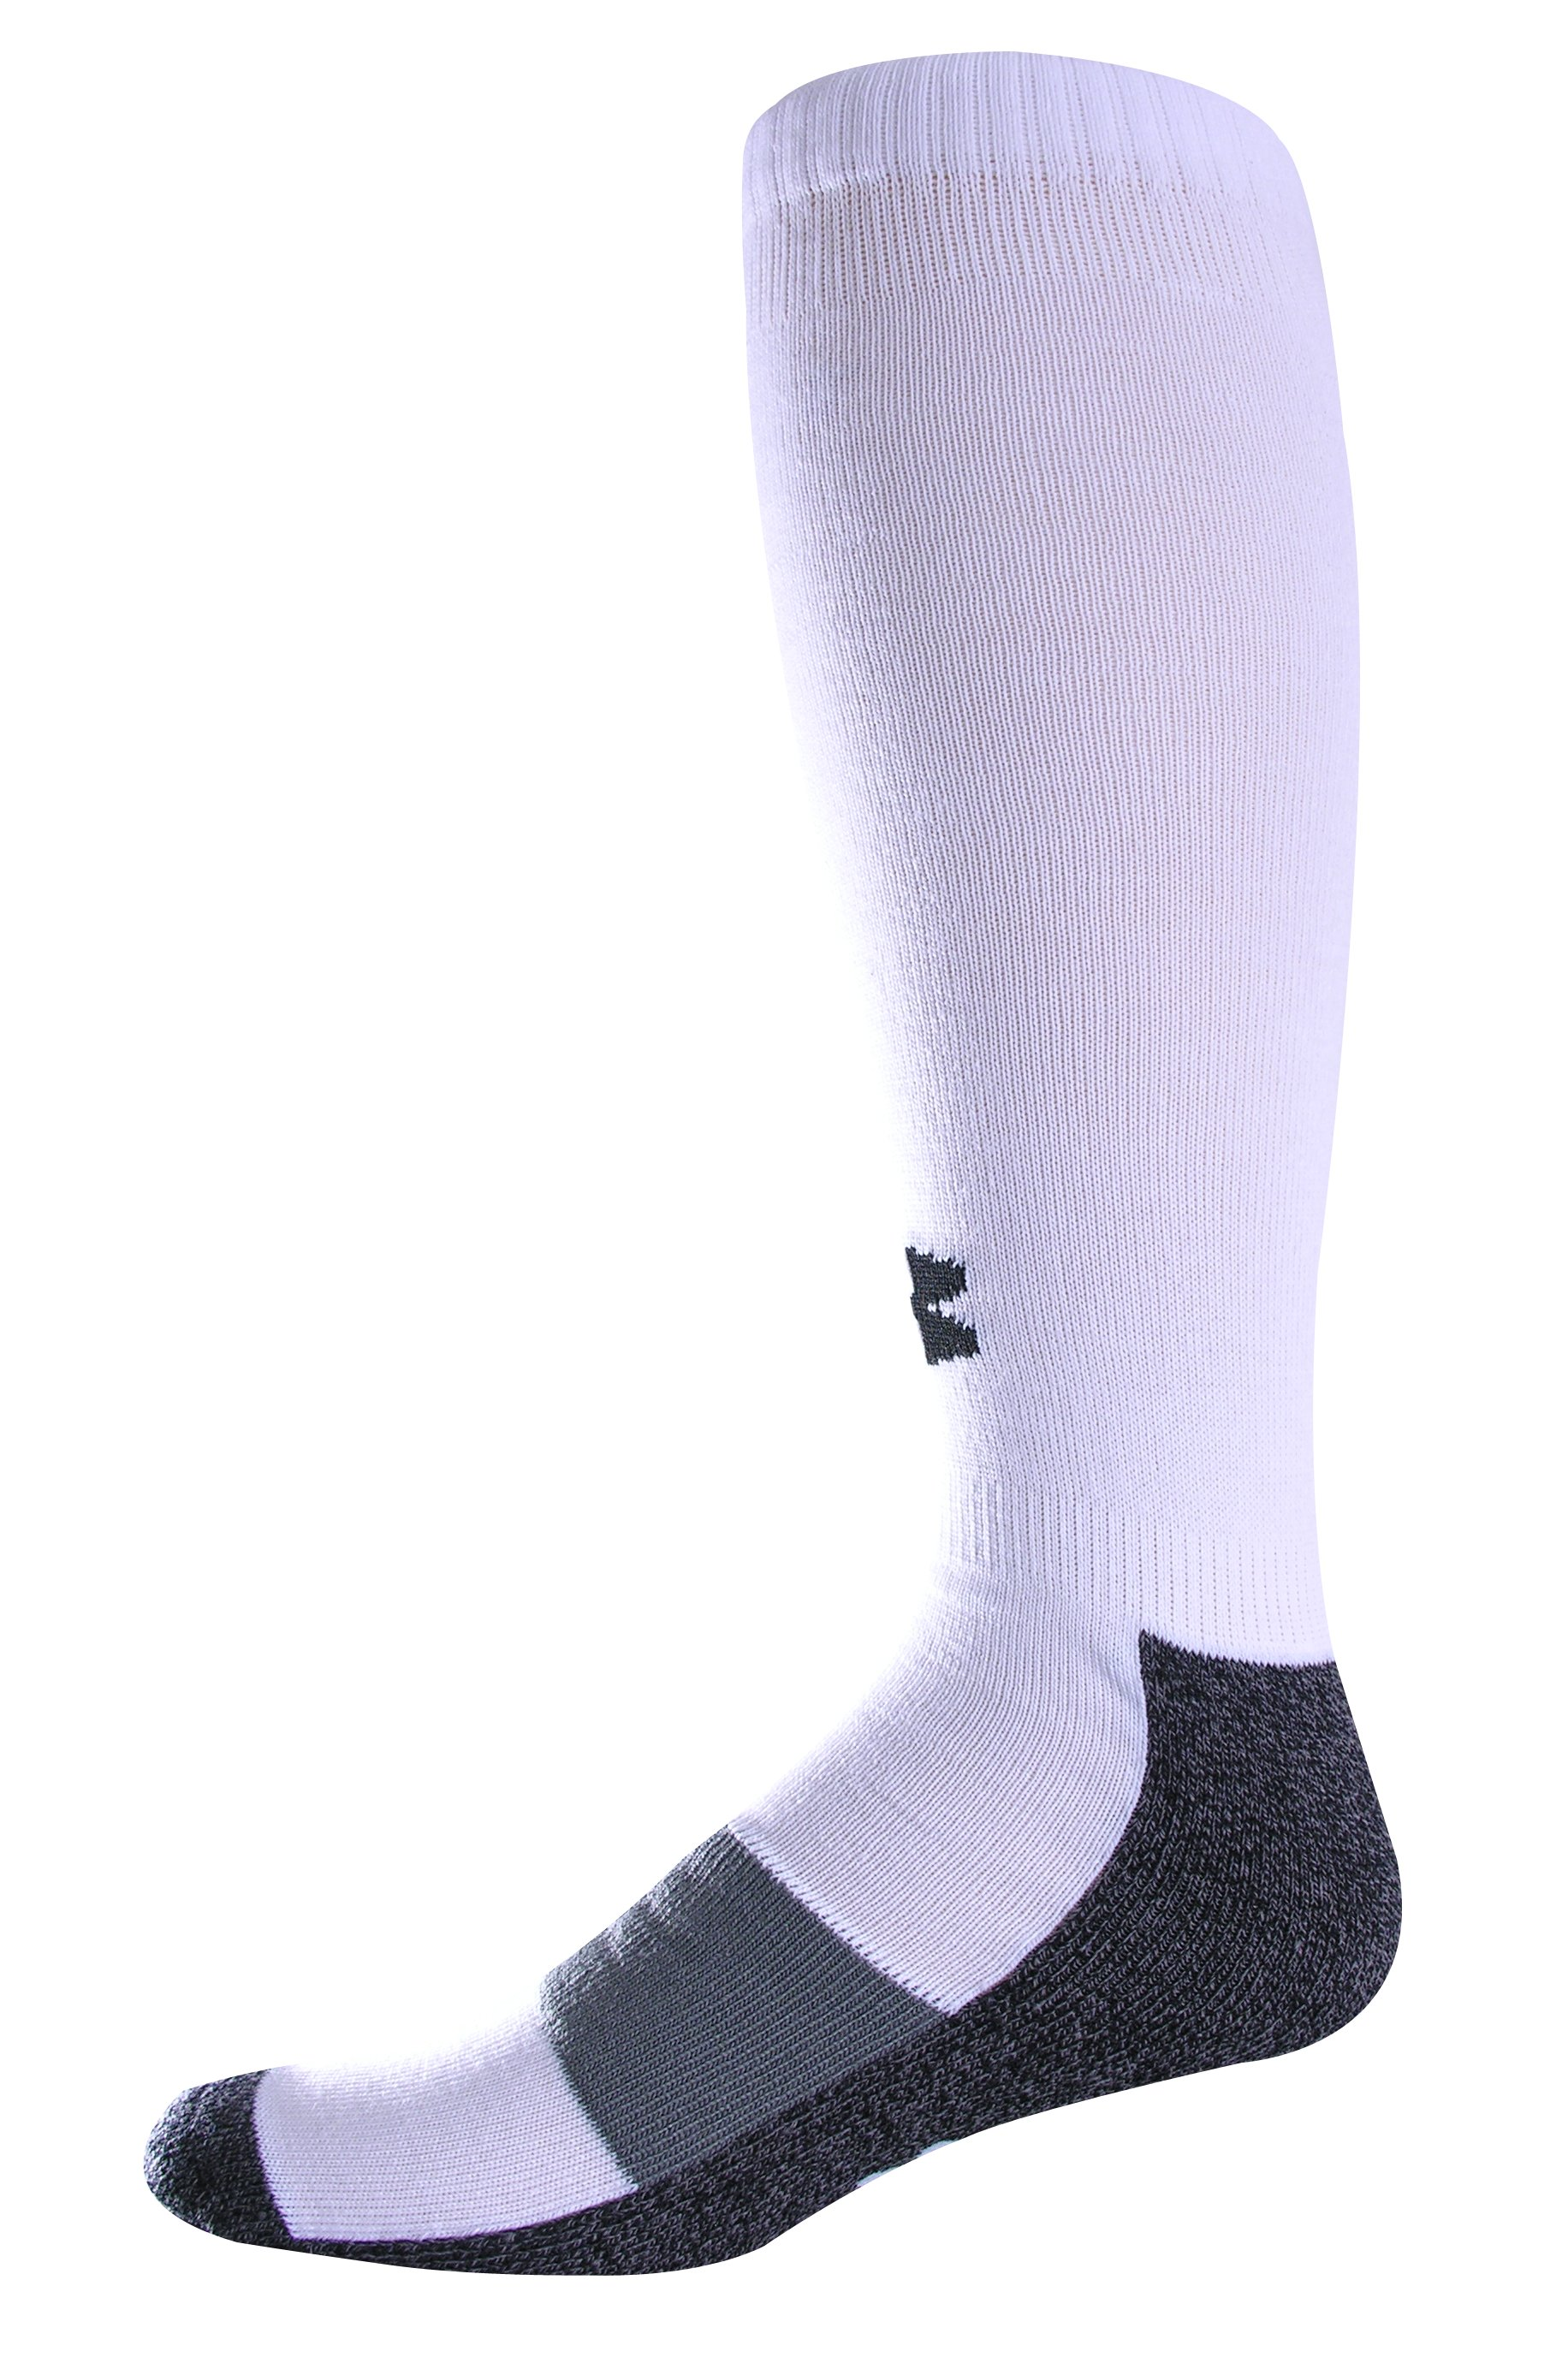 Men's Football Charged Cotton® OTC Socks, White, zoomed image